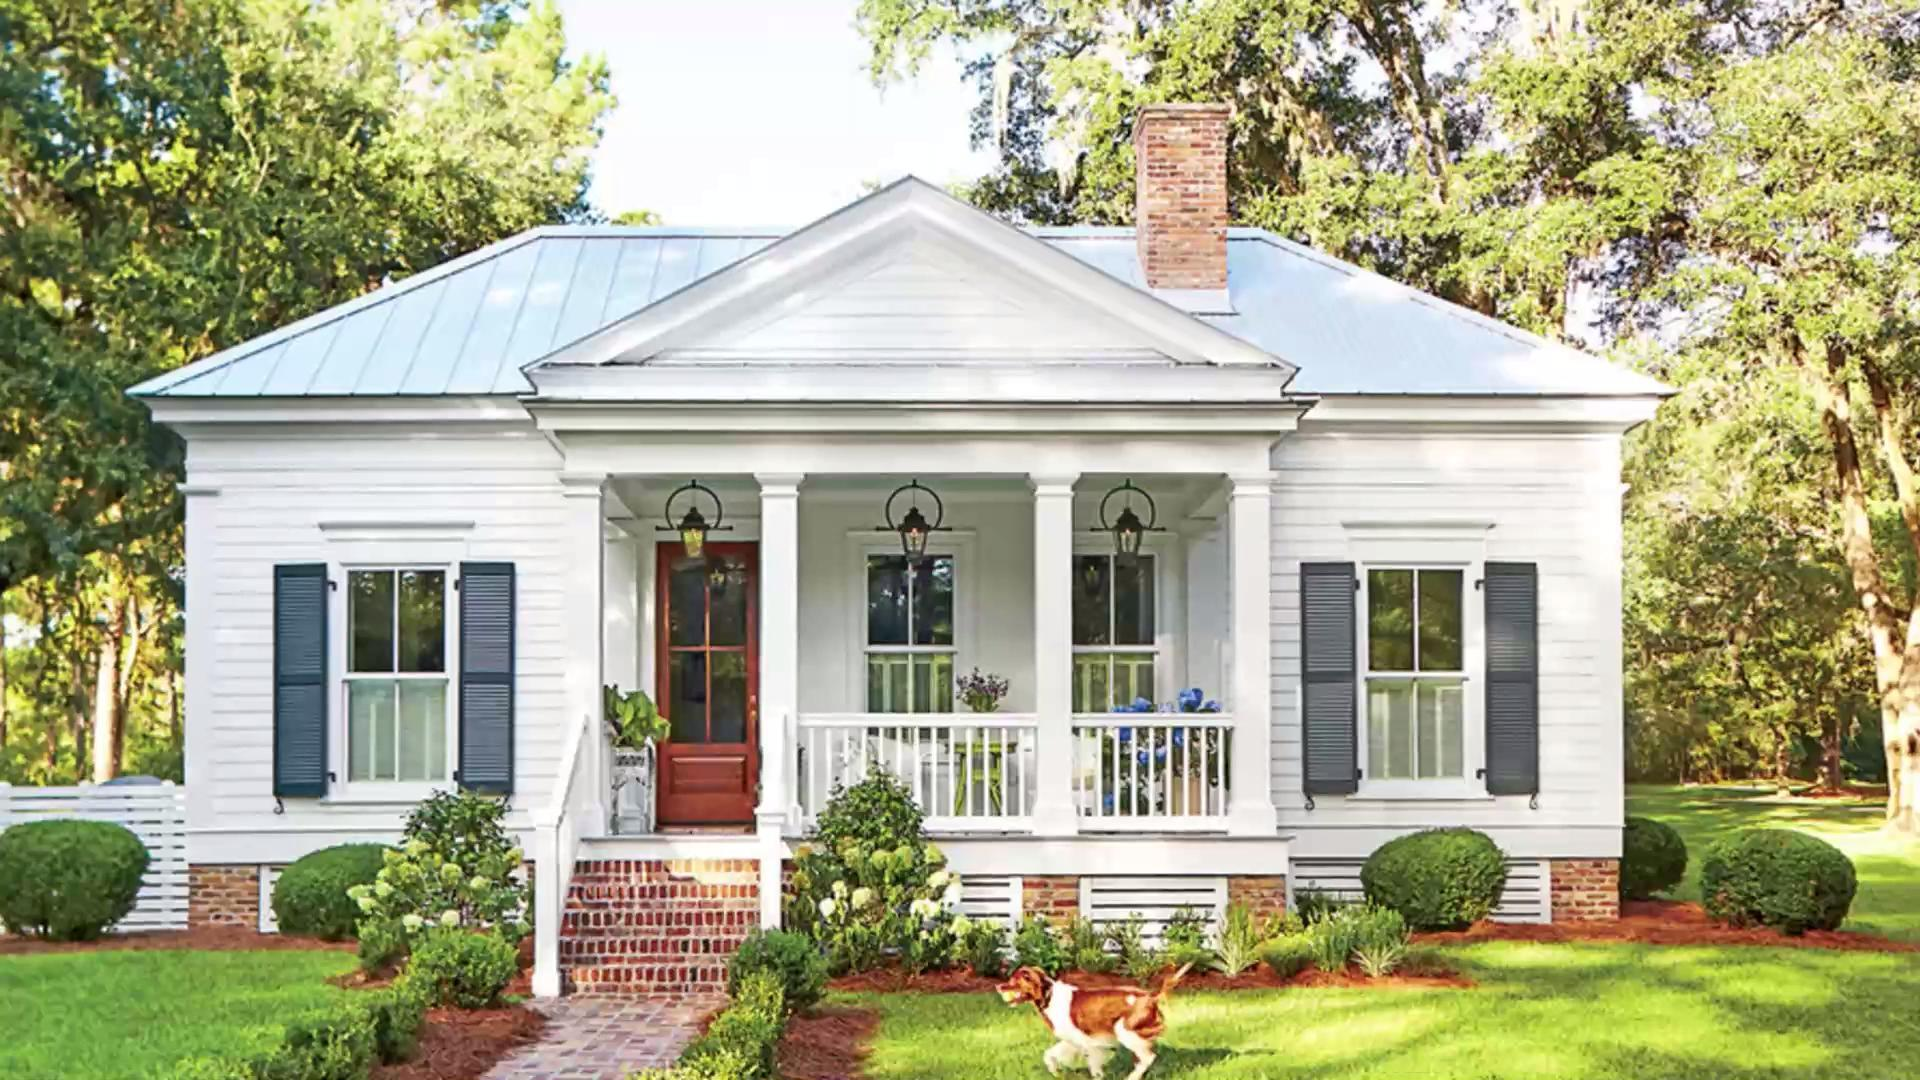 This Small Space Still Has Major Southern Charm